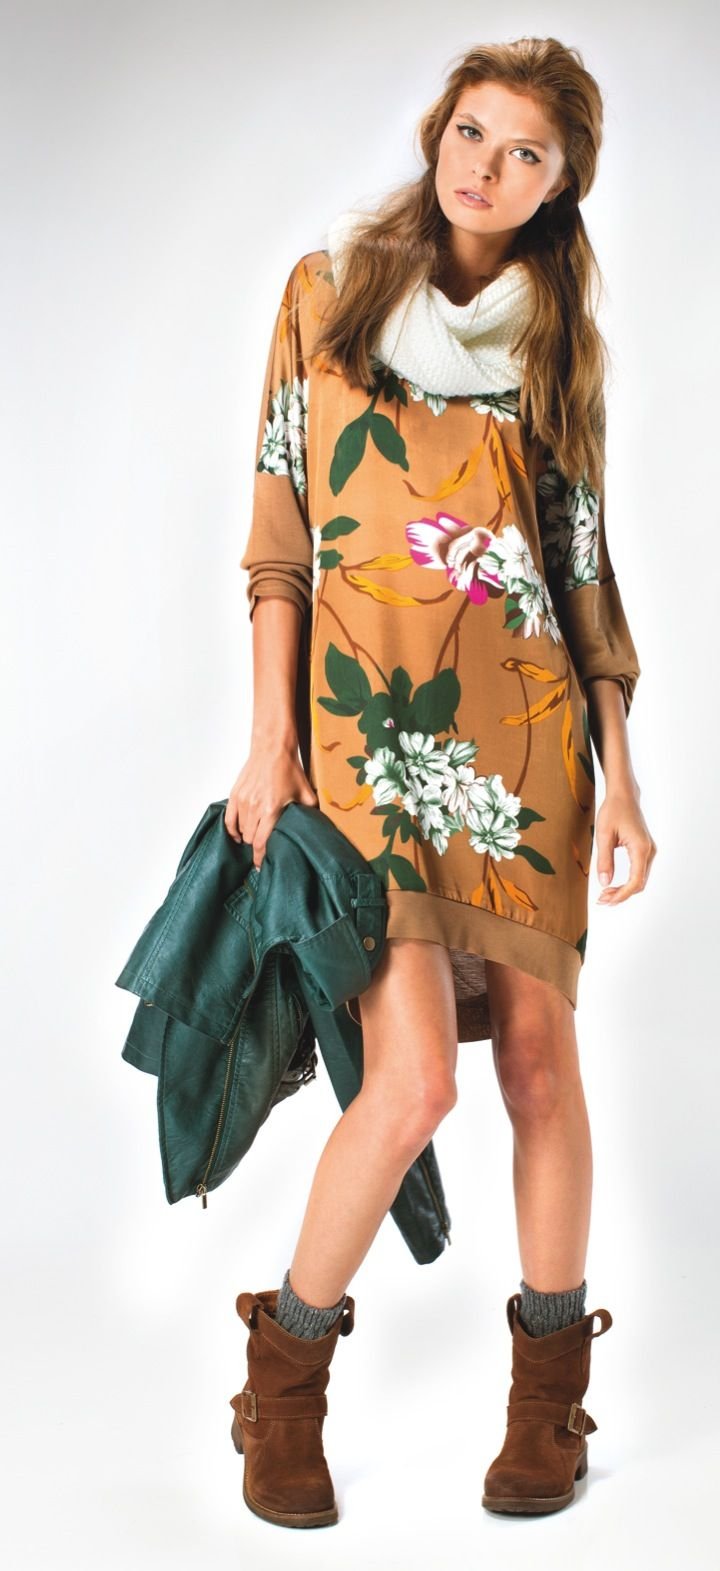 Flowers and more flowers! #MO #fashion #style @strandbulgaria http://bit.ly/MOComing